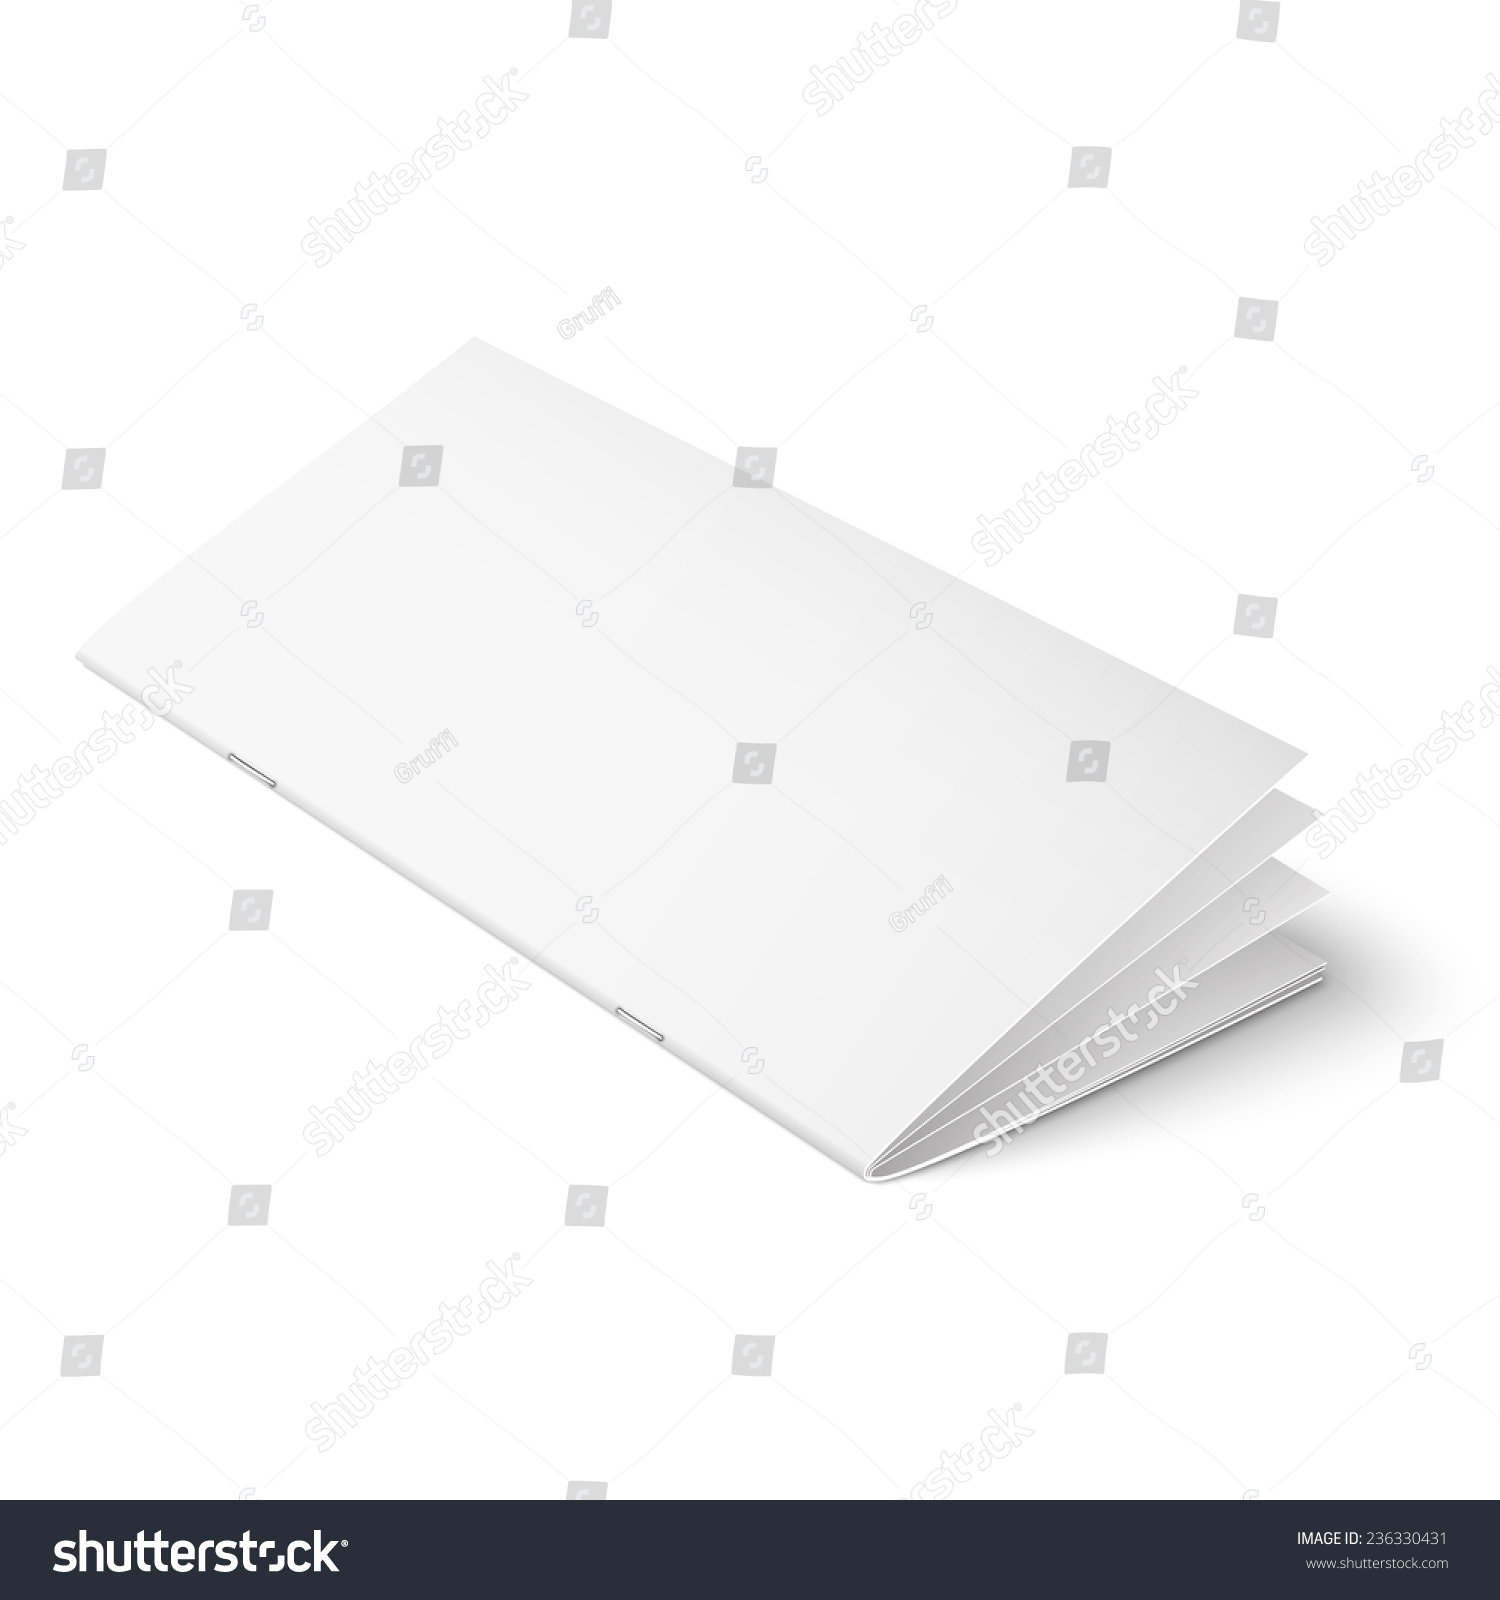 multi page brochure template - empty multipage brochure template clips on stock vector